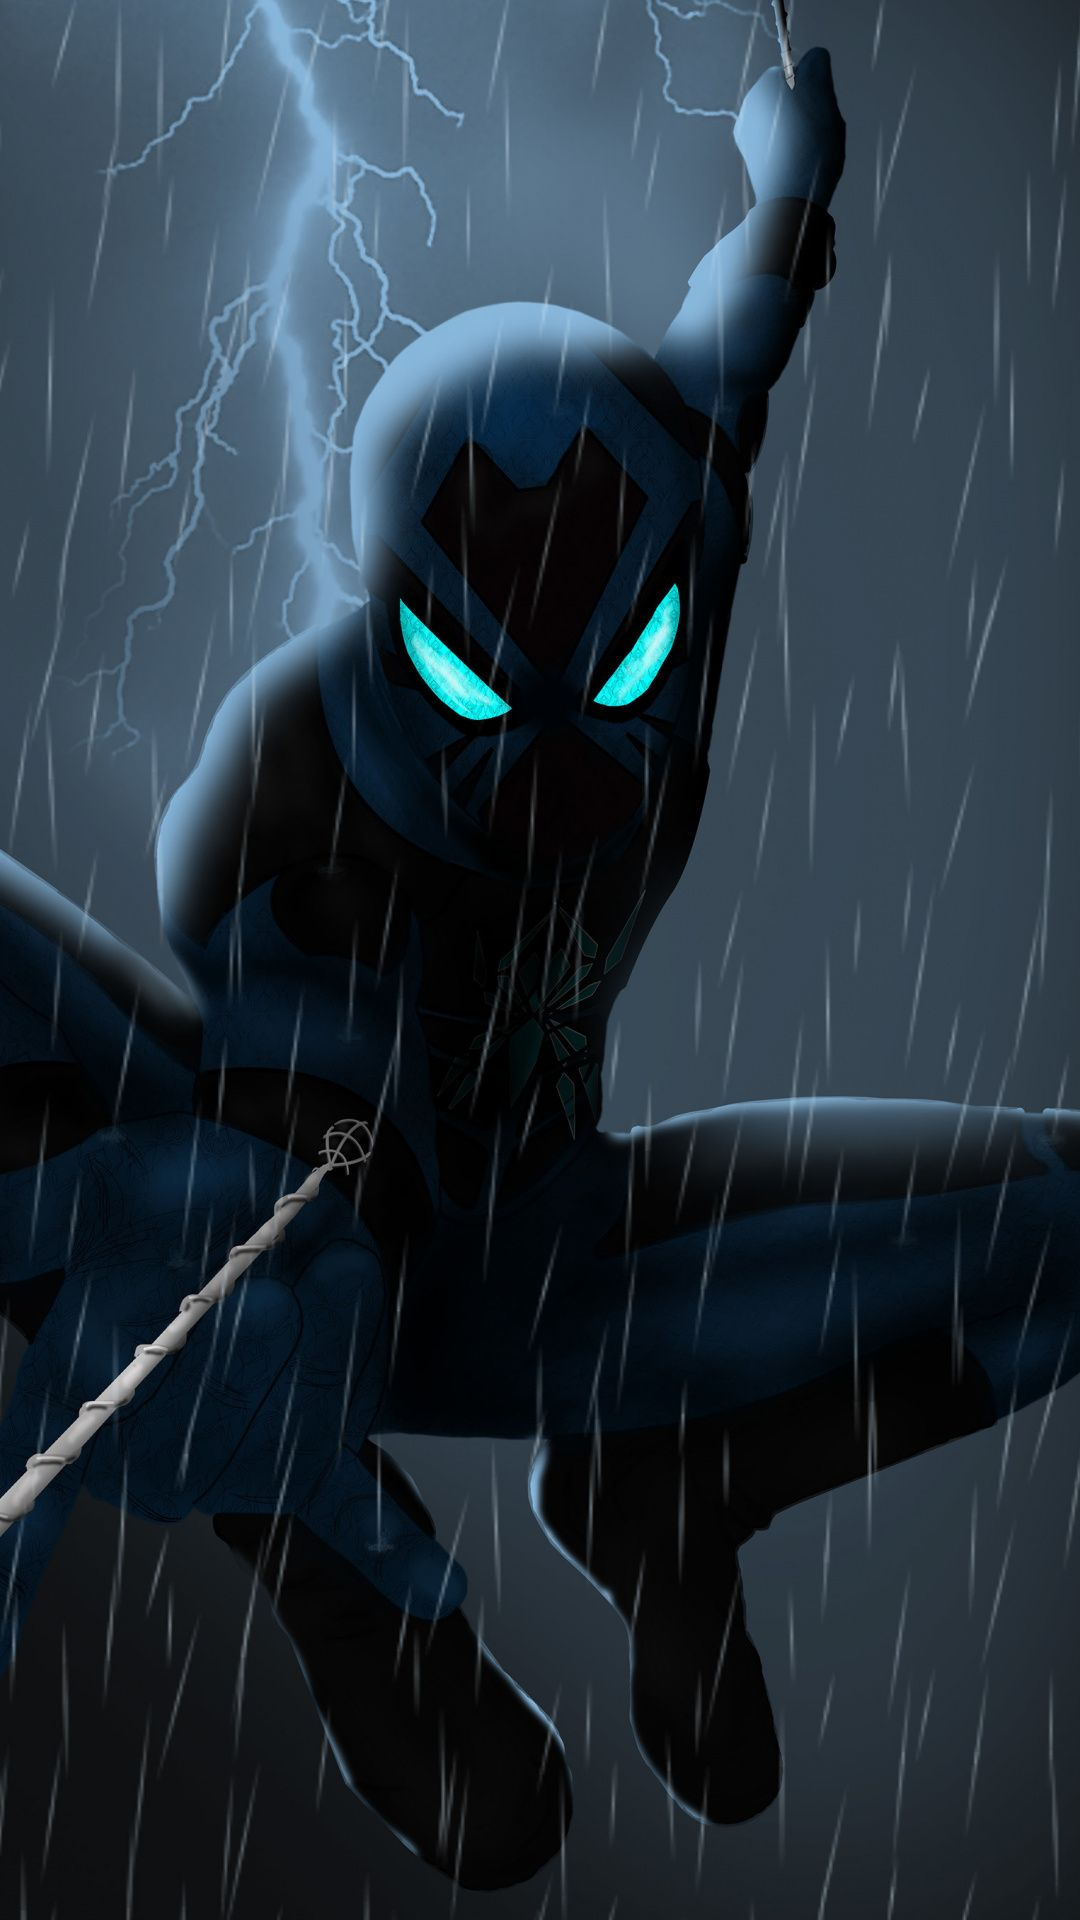 Spider Man 2099 Rain Artwork Dark 1080x1920 Wallpaper Marvel